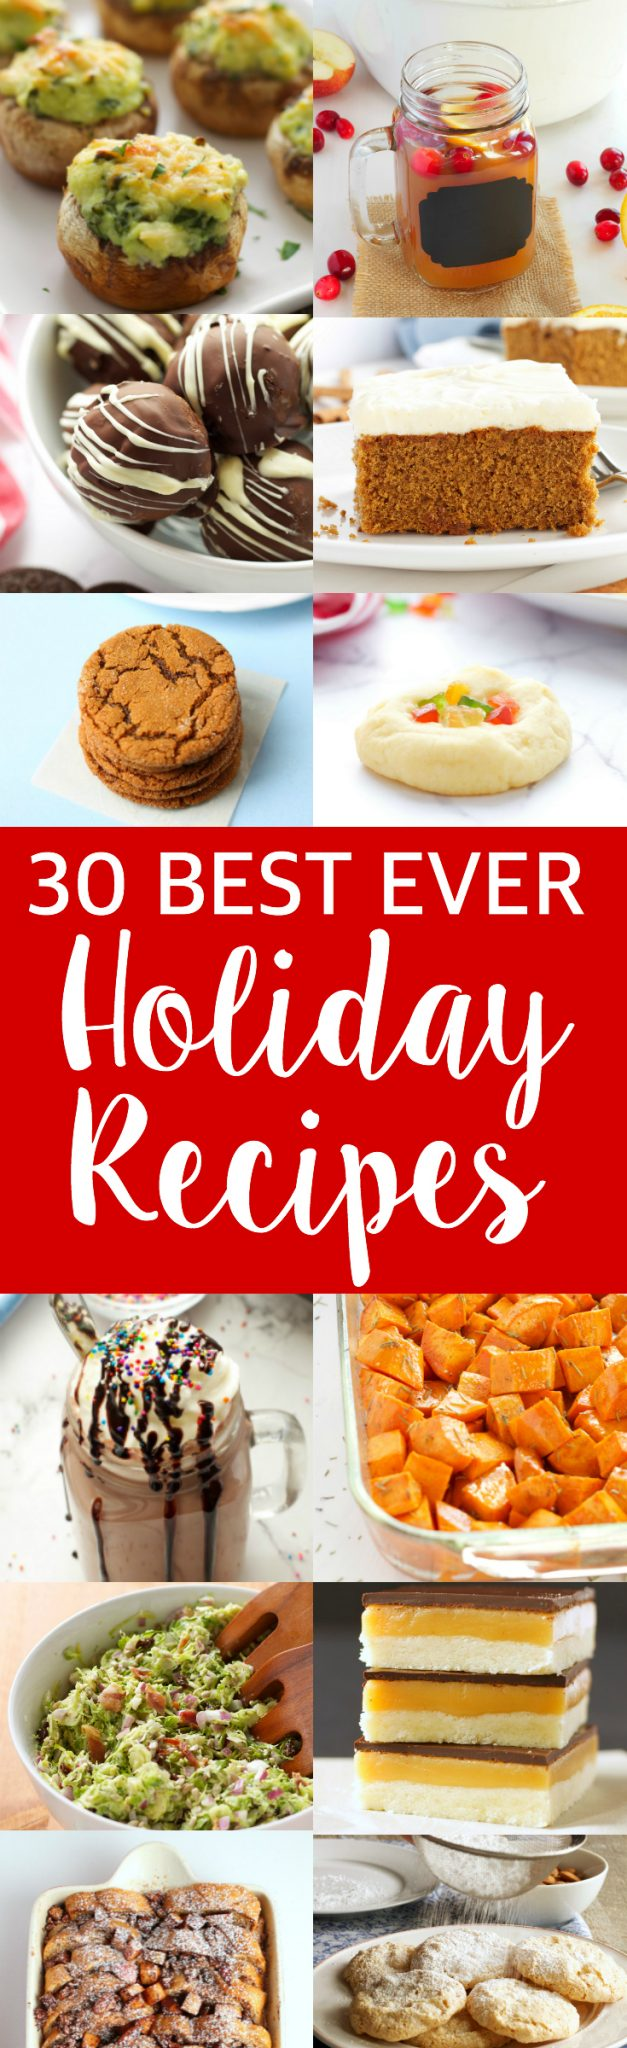 Try any of these 30 Best Ever Holiday Recipes for Christmas this year to make your celebrations extra festive and delicious! Recipes from thebusybaker.ca! via @busybakerblog